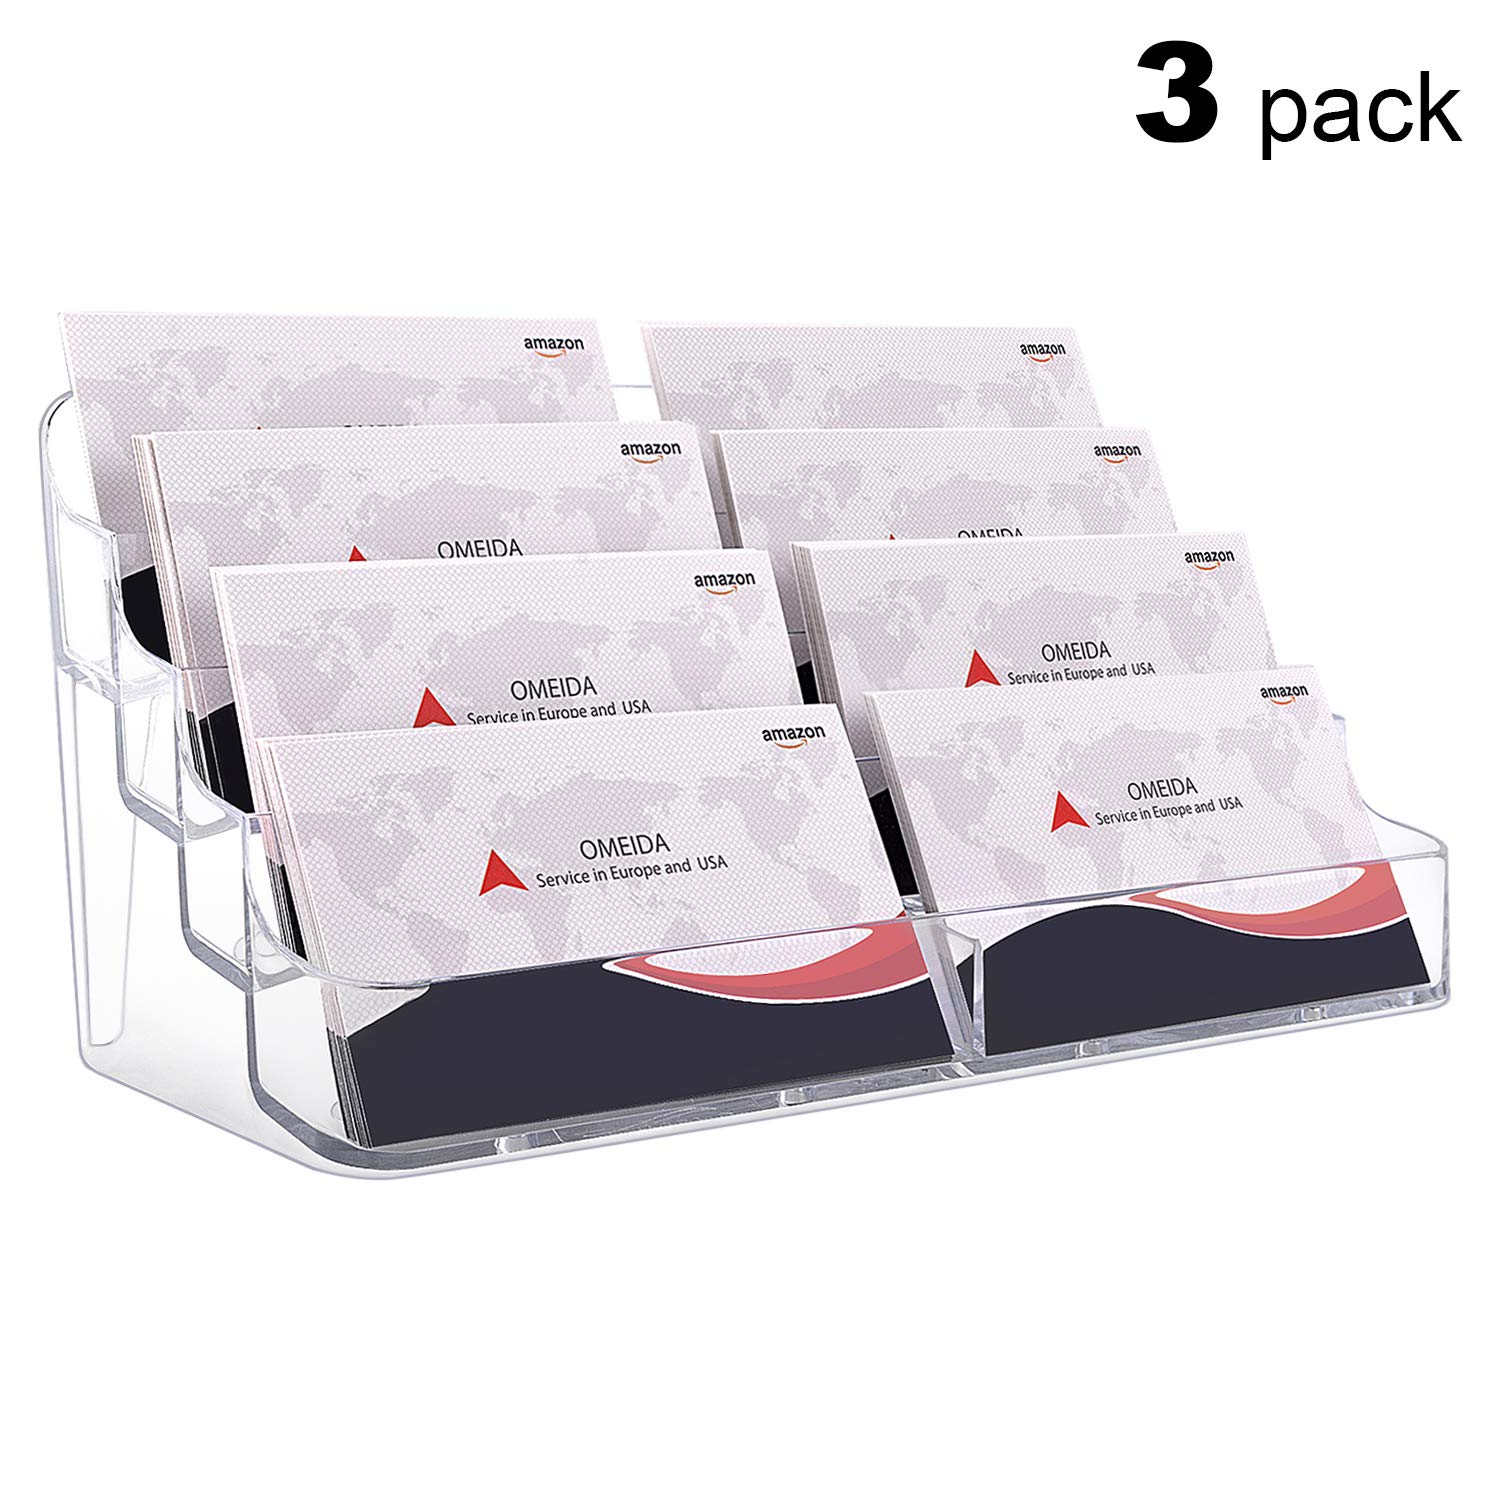 MaxGear Acrylic Business Card Holder, Office Desktop Clear Business Card Holder Display, Business Card Stand for Desk Plastic, 8 Pocket 3pack